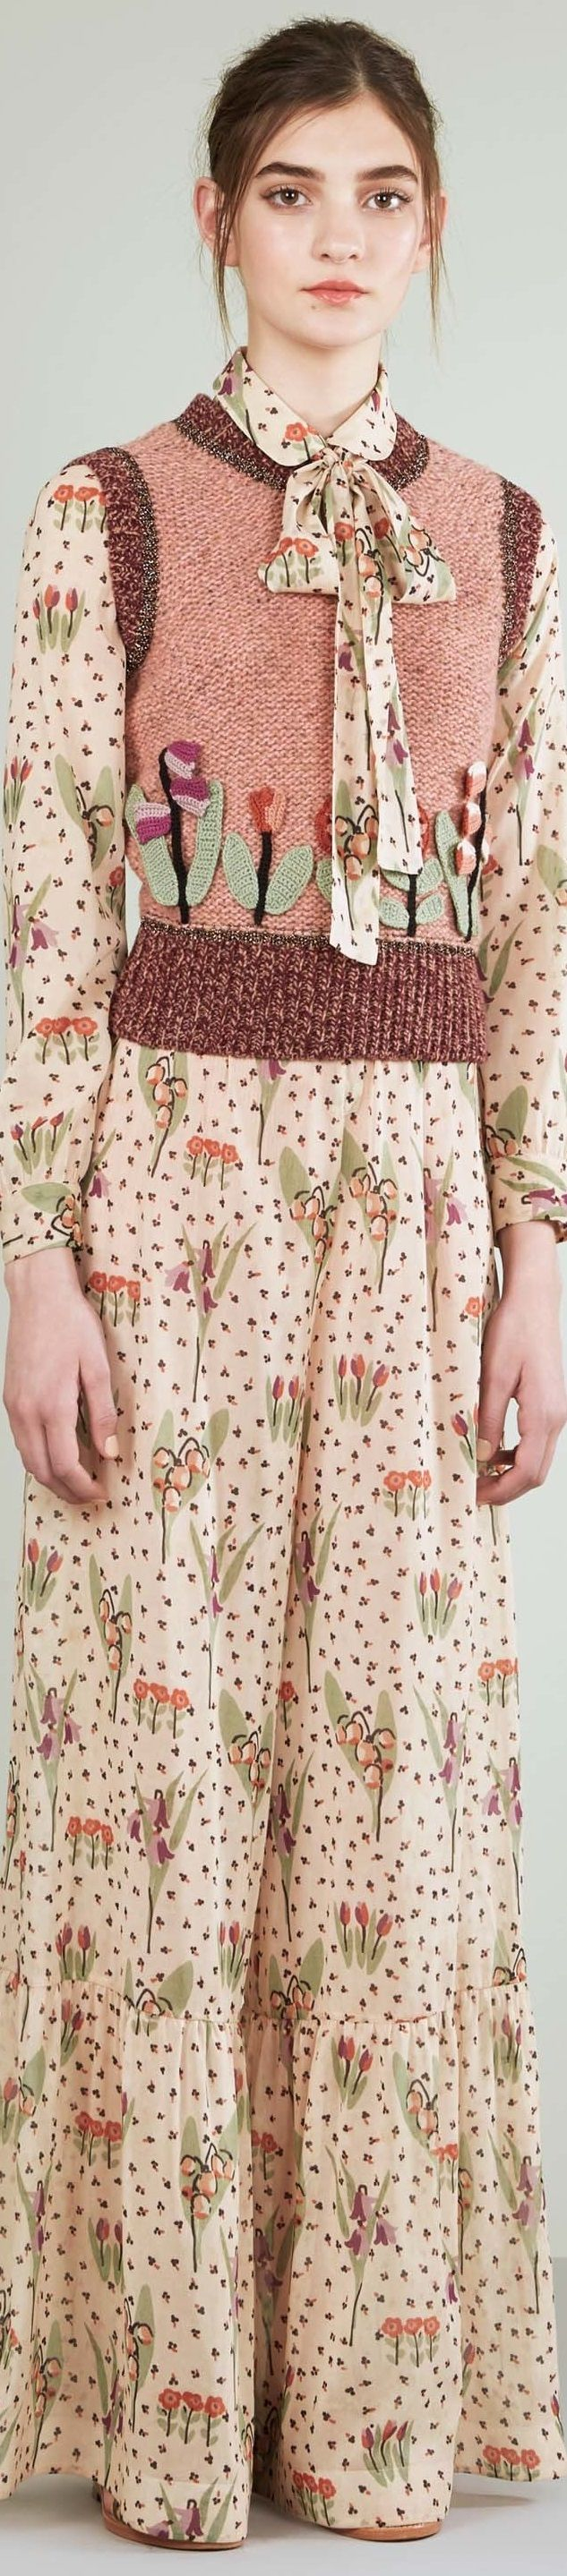 Red Valentino resort 2017. This collection had a few truly special ones, including a gauzy hummingbird print with velvet bows at the shoulders and another wisp of a thing embroidered with lilies of the valley.